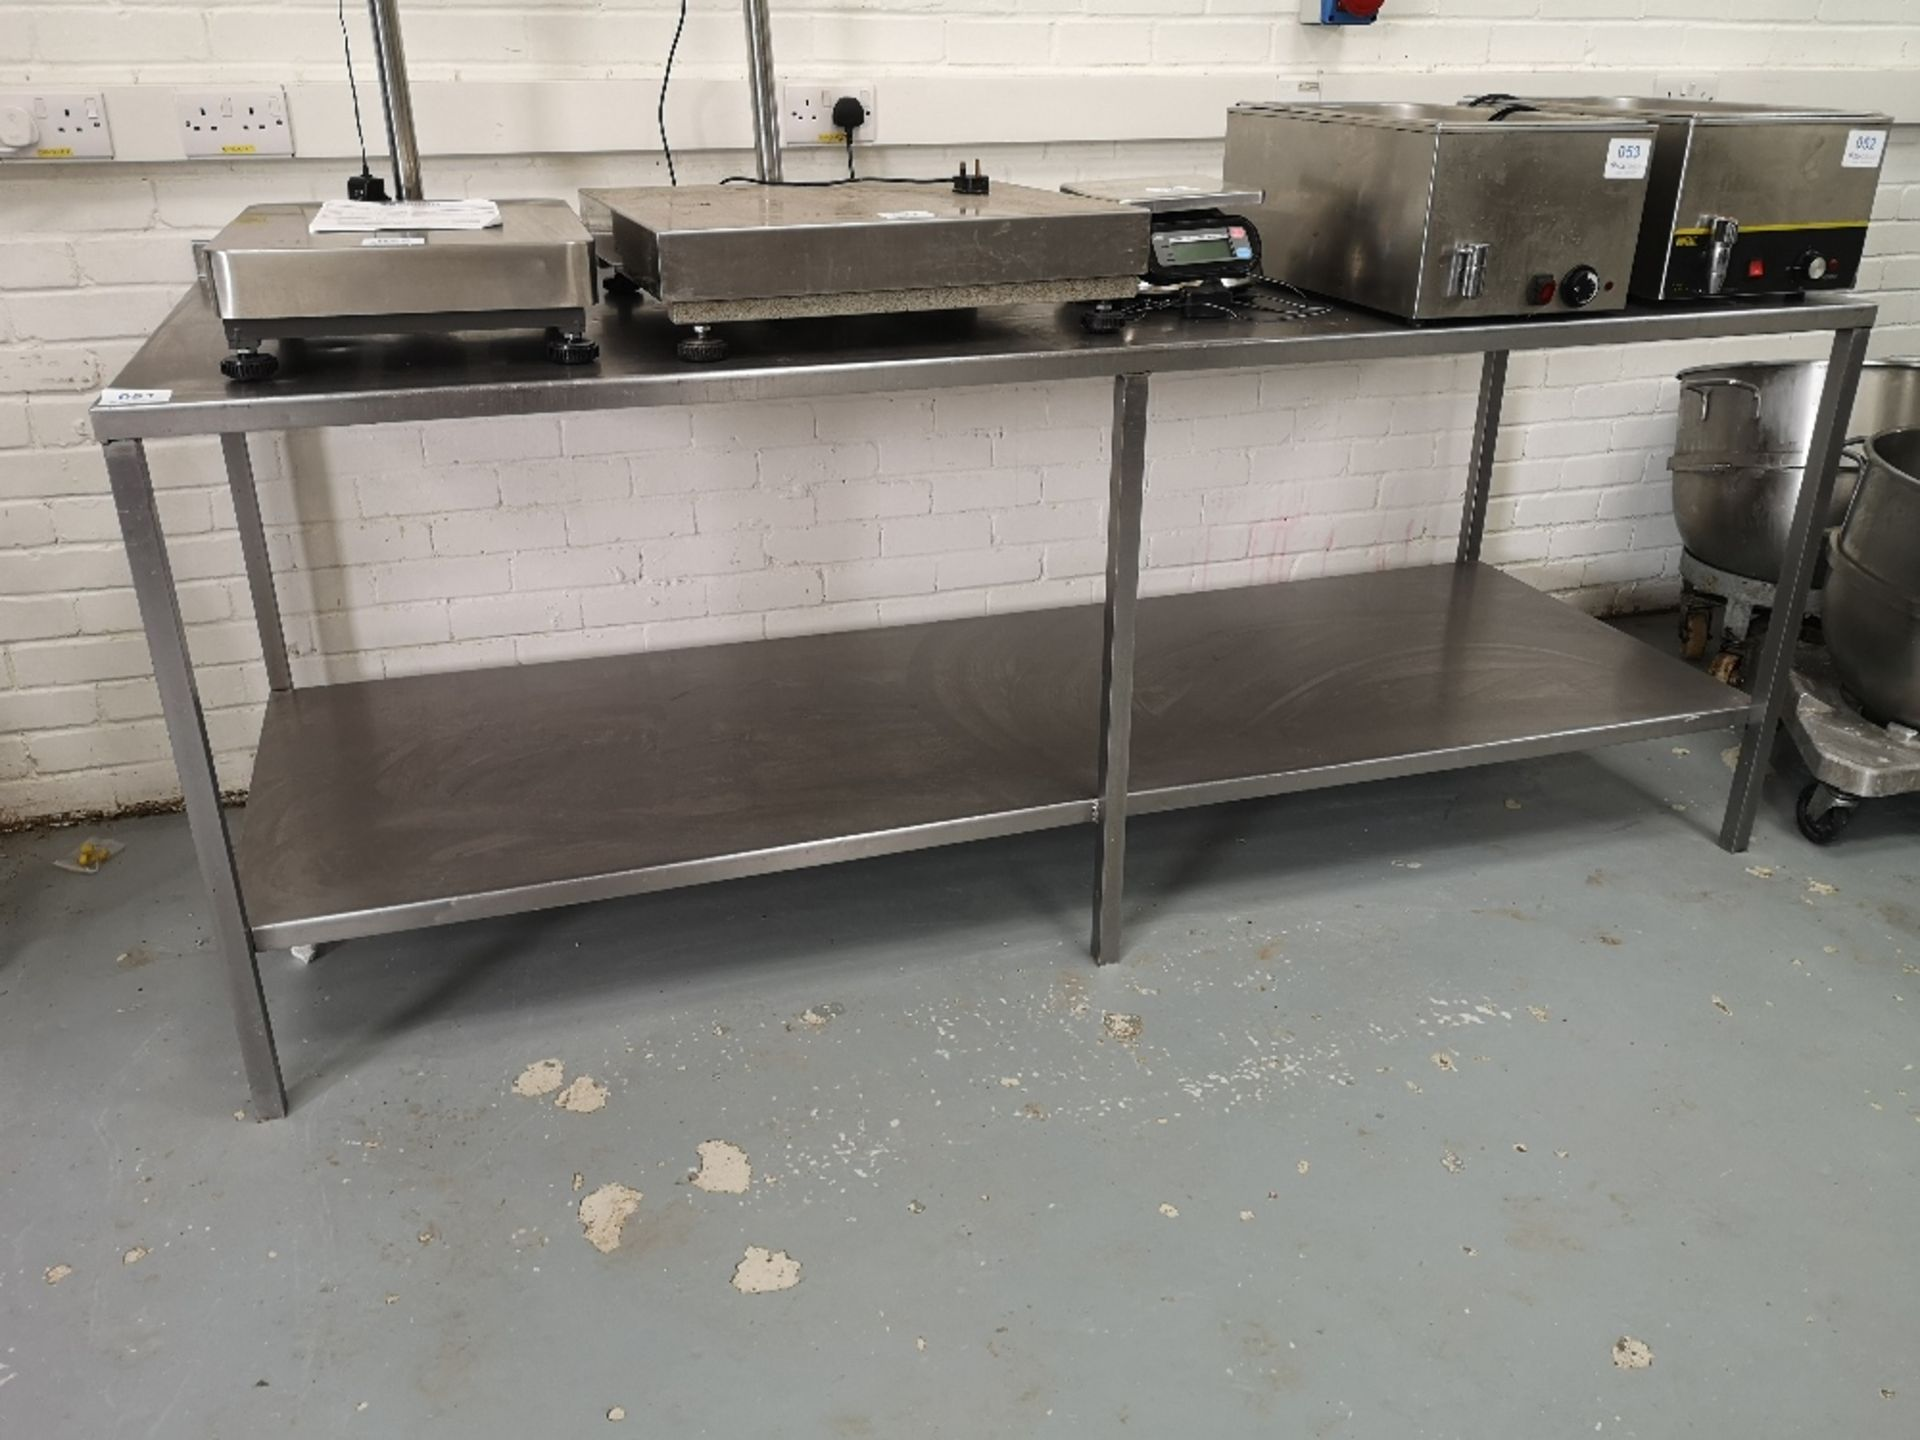 Stainless Steel Two Tier Preparation Table - Image 2 of 2